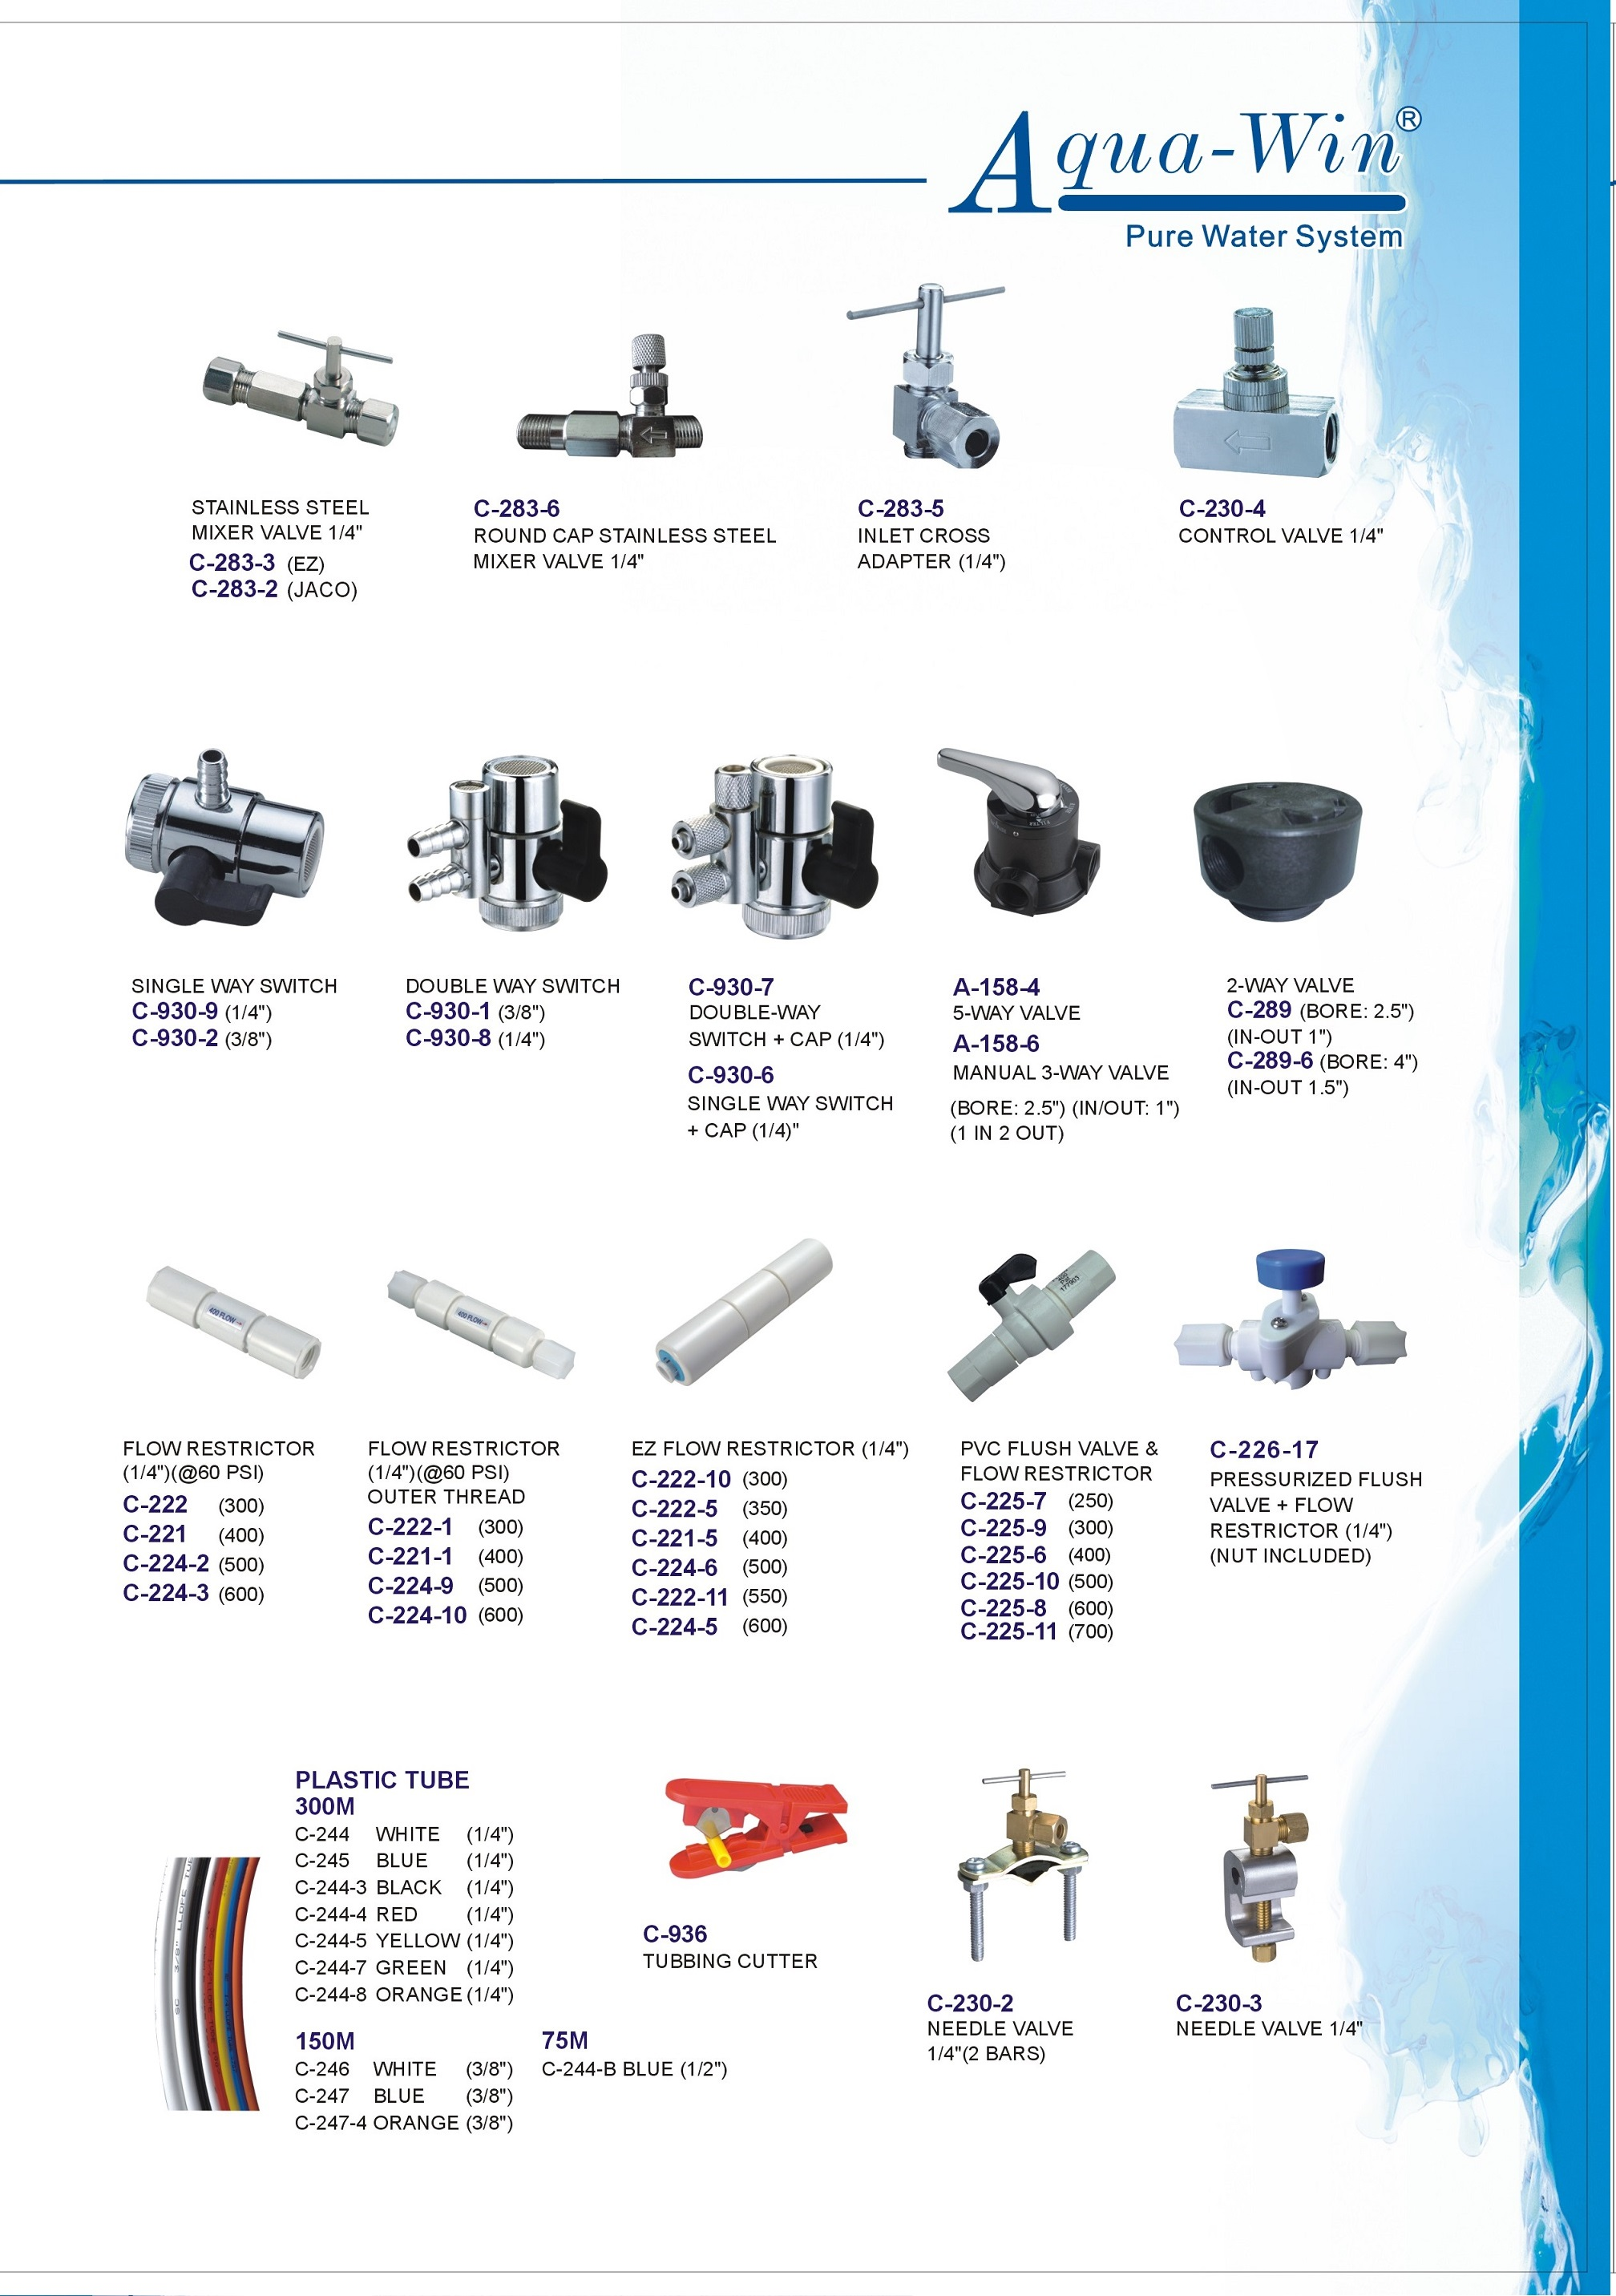 Ro Accessories Ro System Parts Reverse Osmosis Accessories